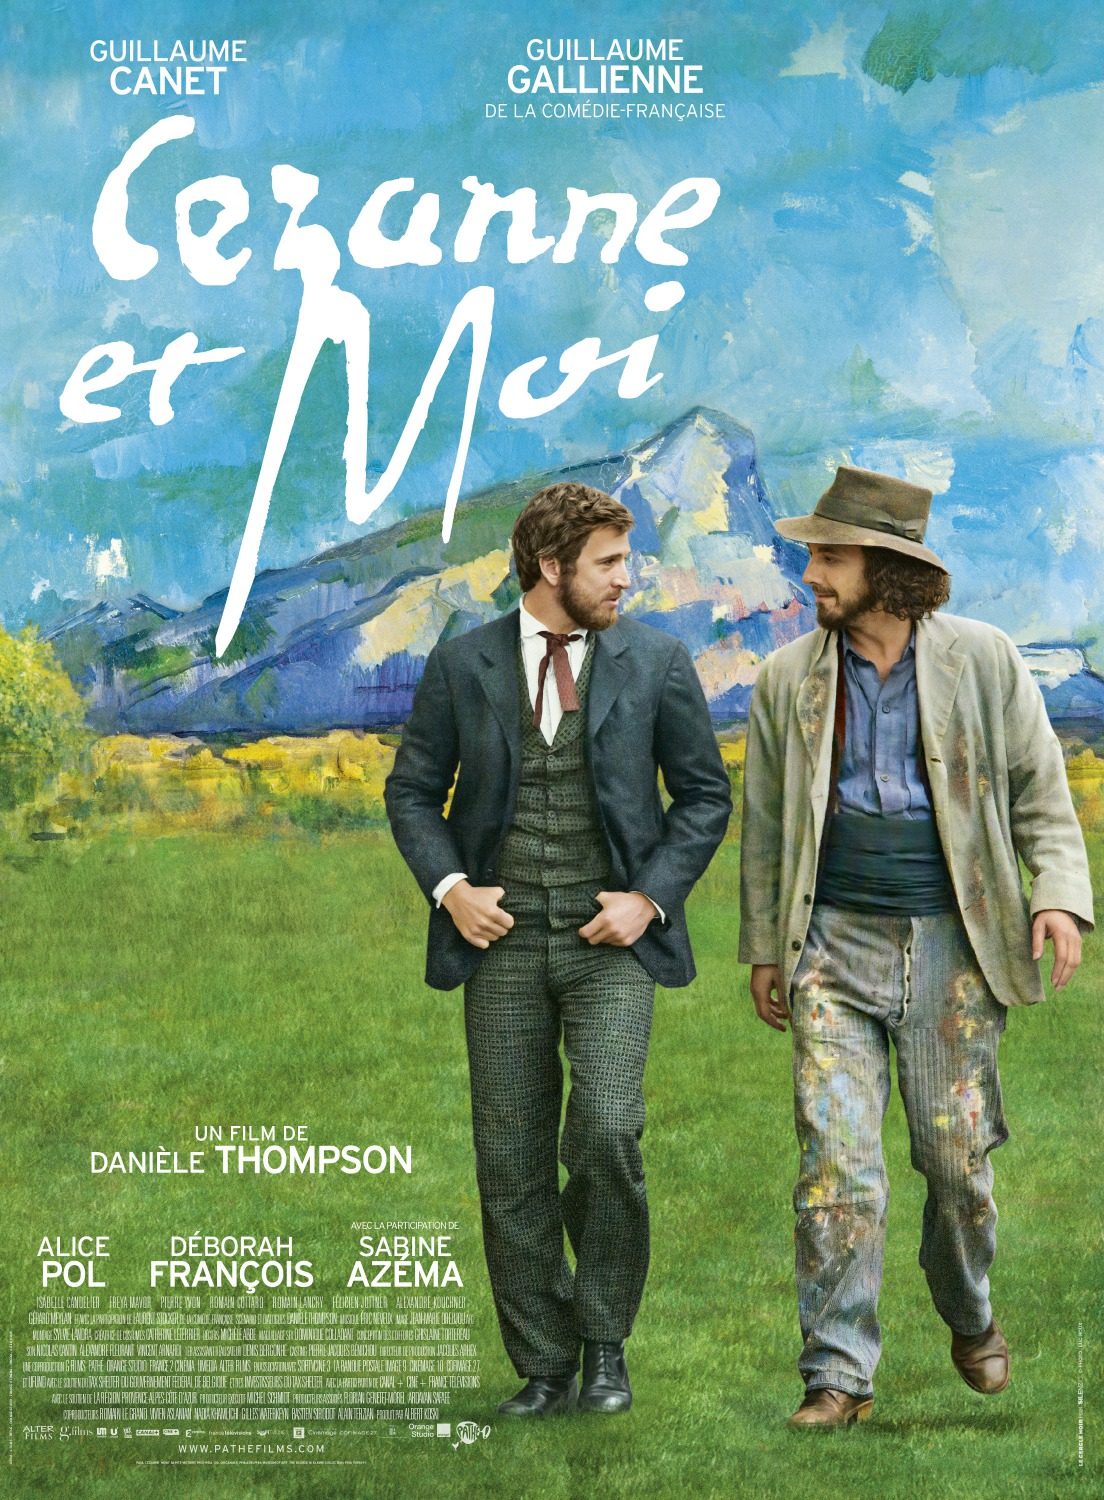 Showtime for Cézanne et Moi playing July 21st, 2017 at 4:40 PM ...